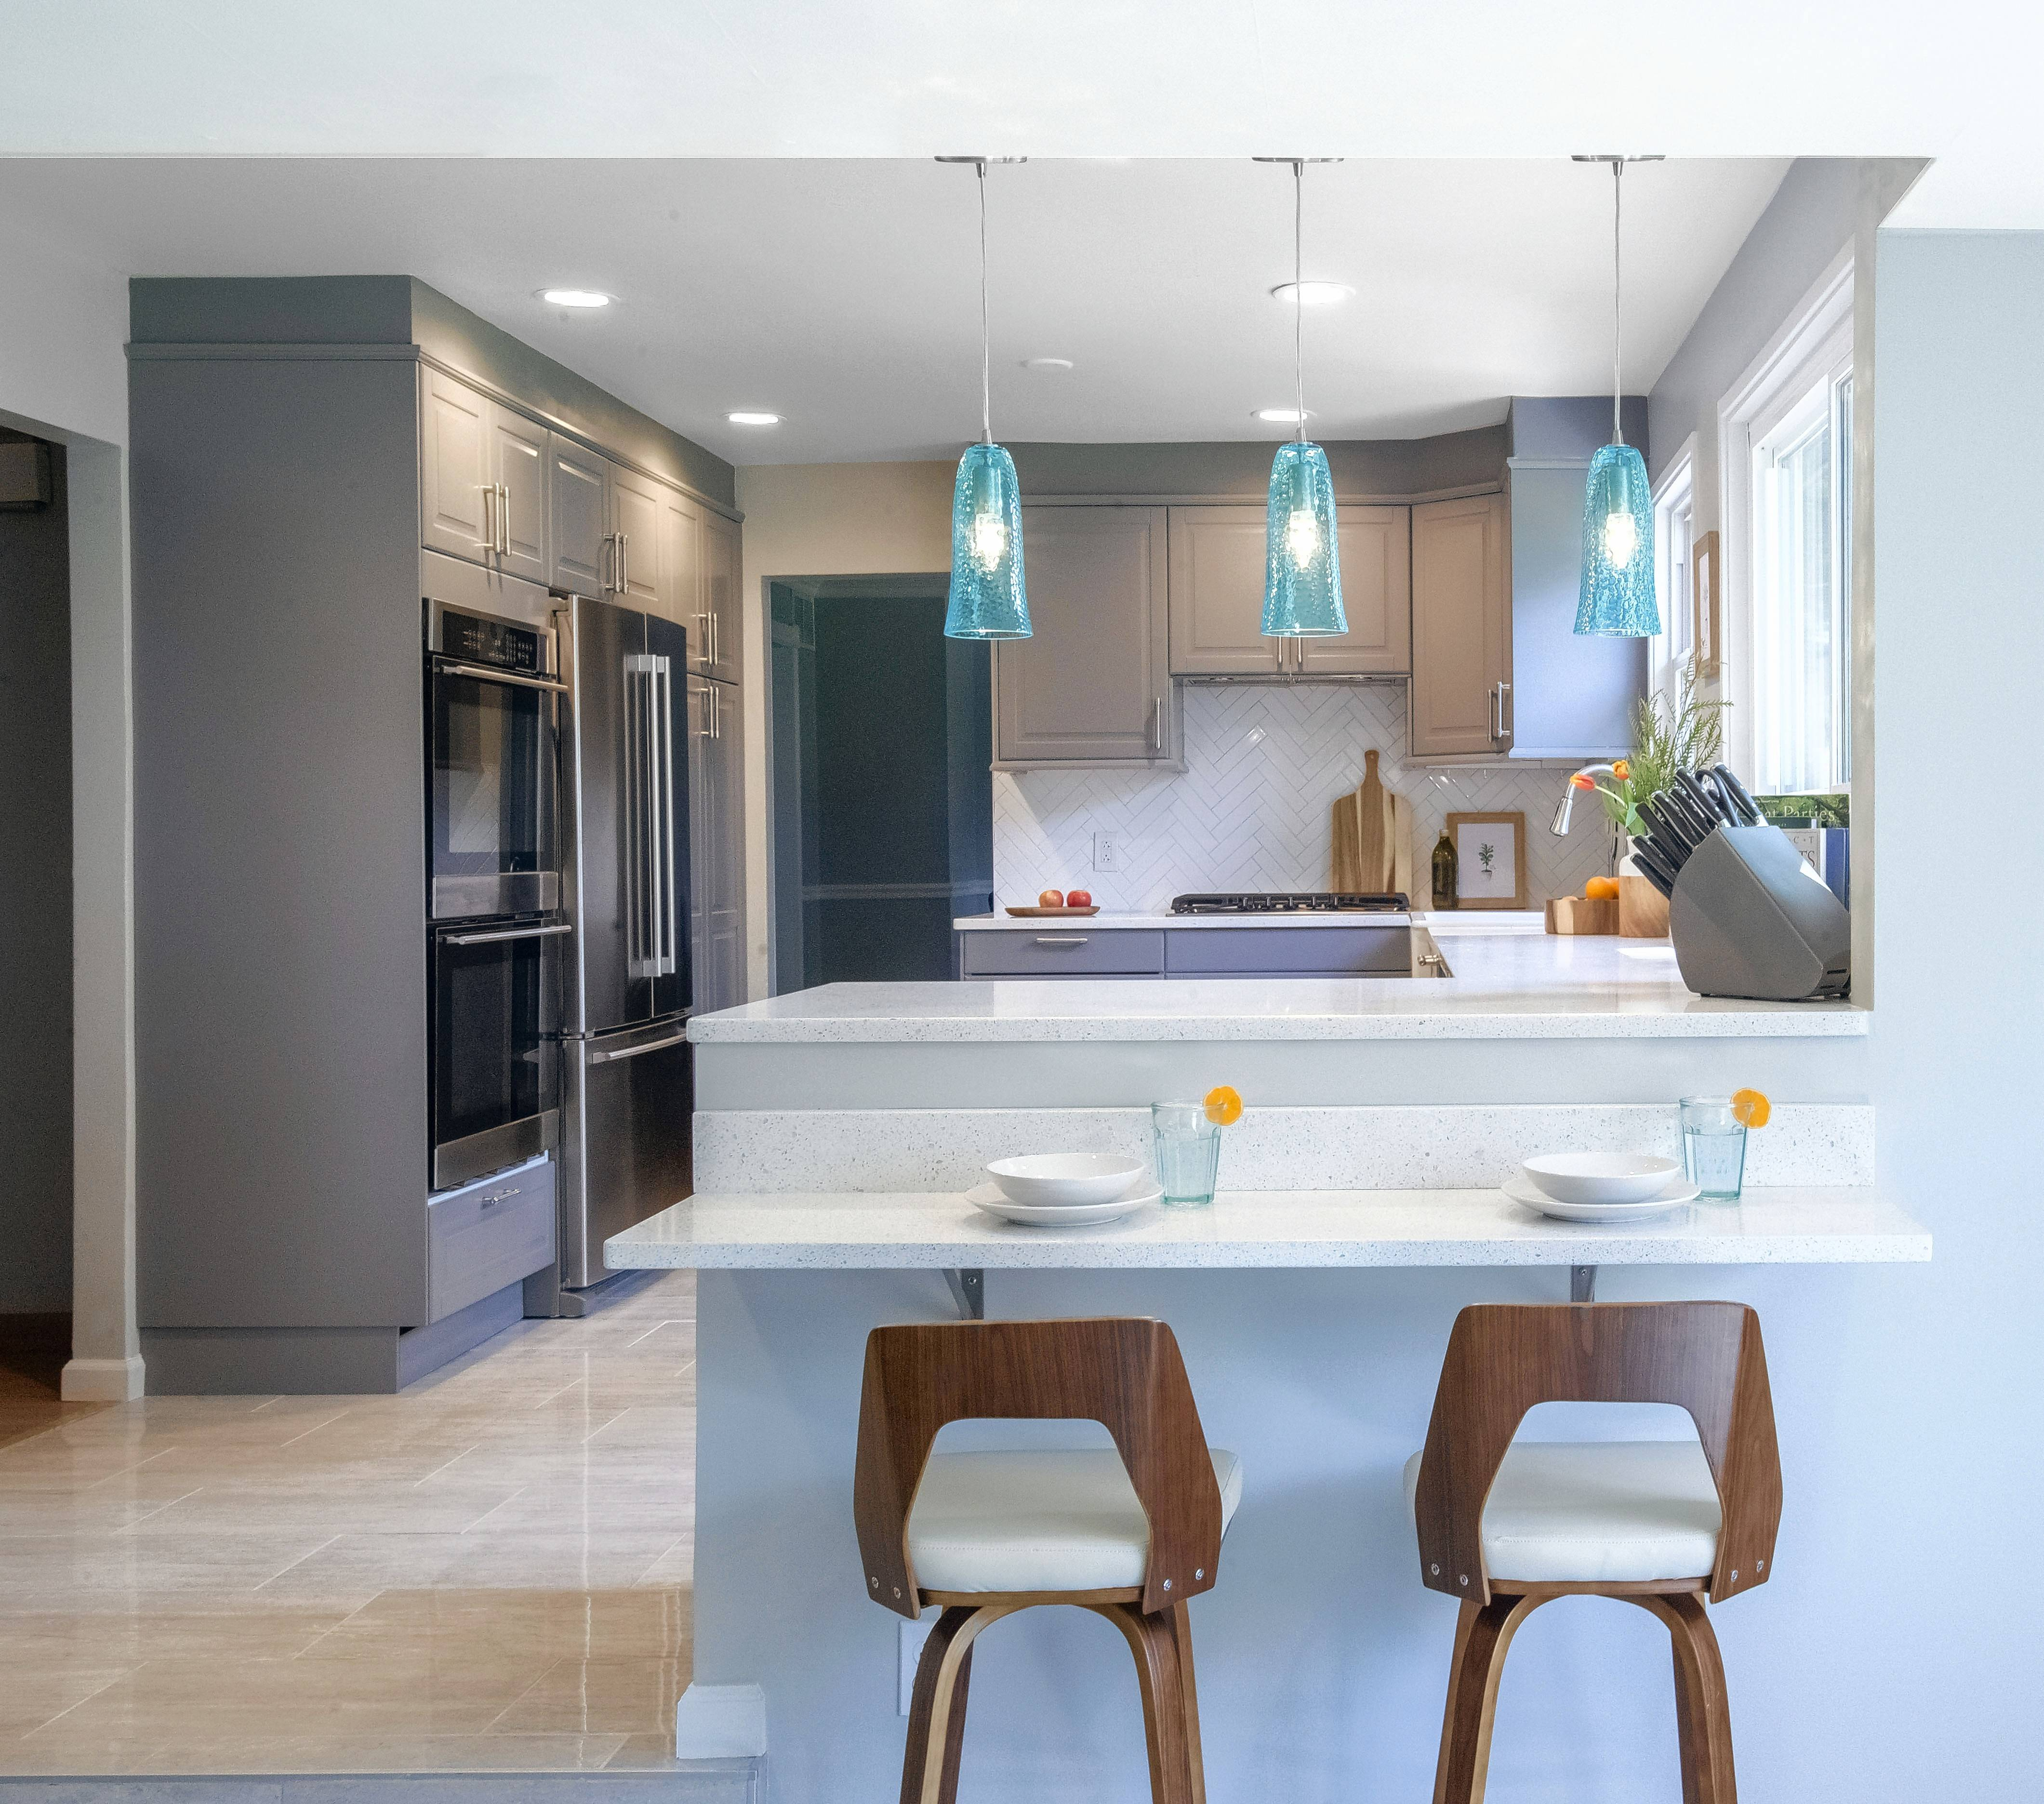 How To Choose Under Cabinet Lighting Kitchen: Choosing The Best Lighting For Your Kitchen And Bath